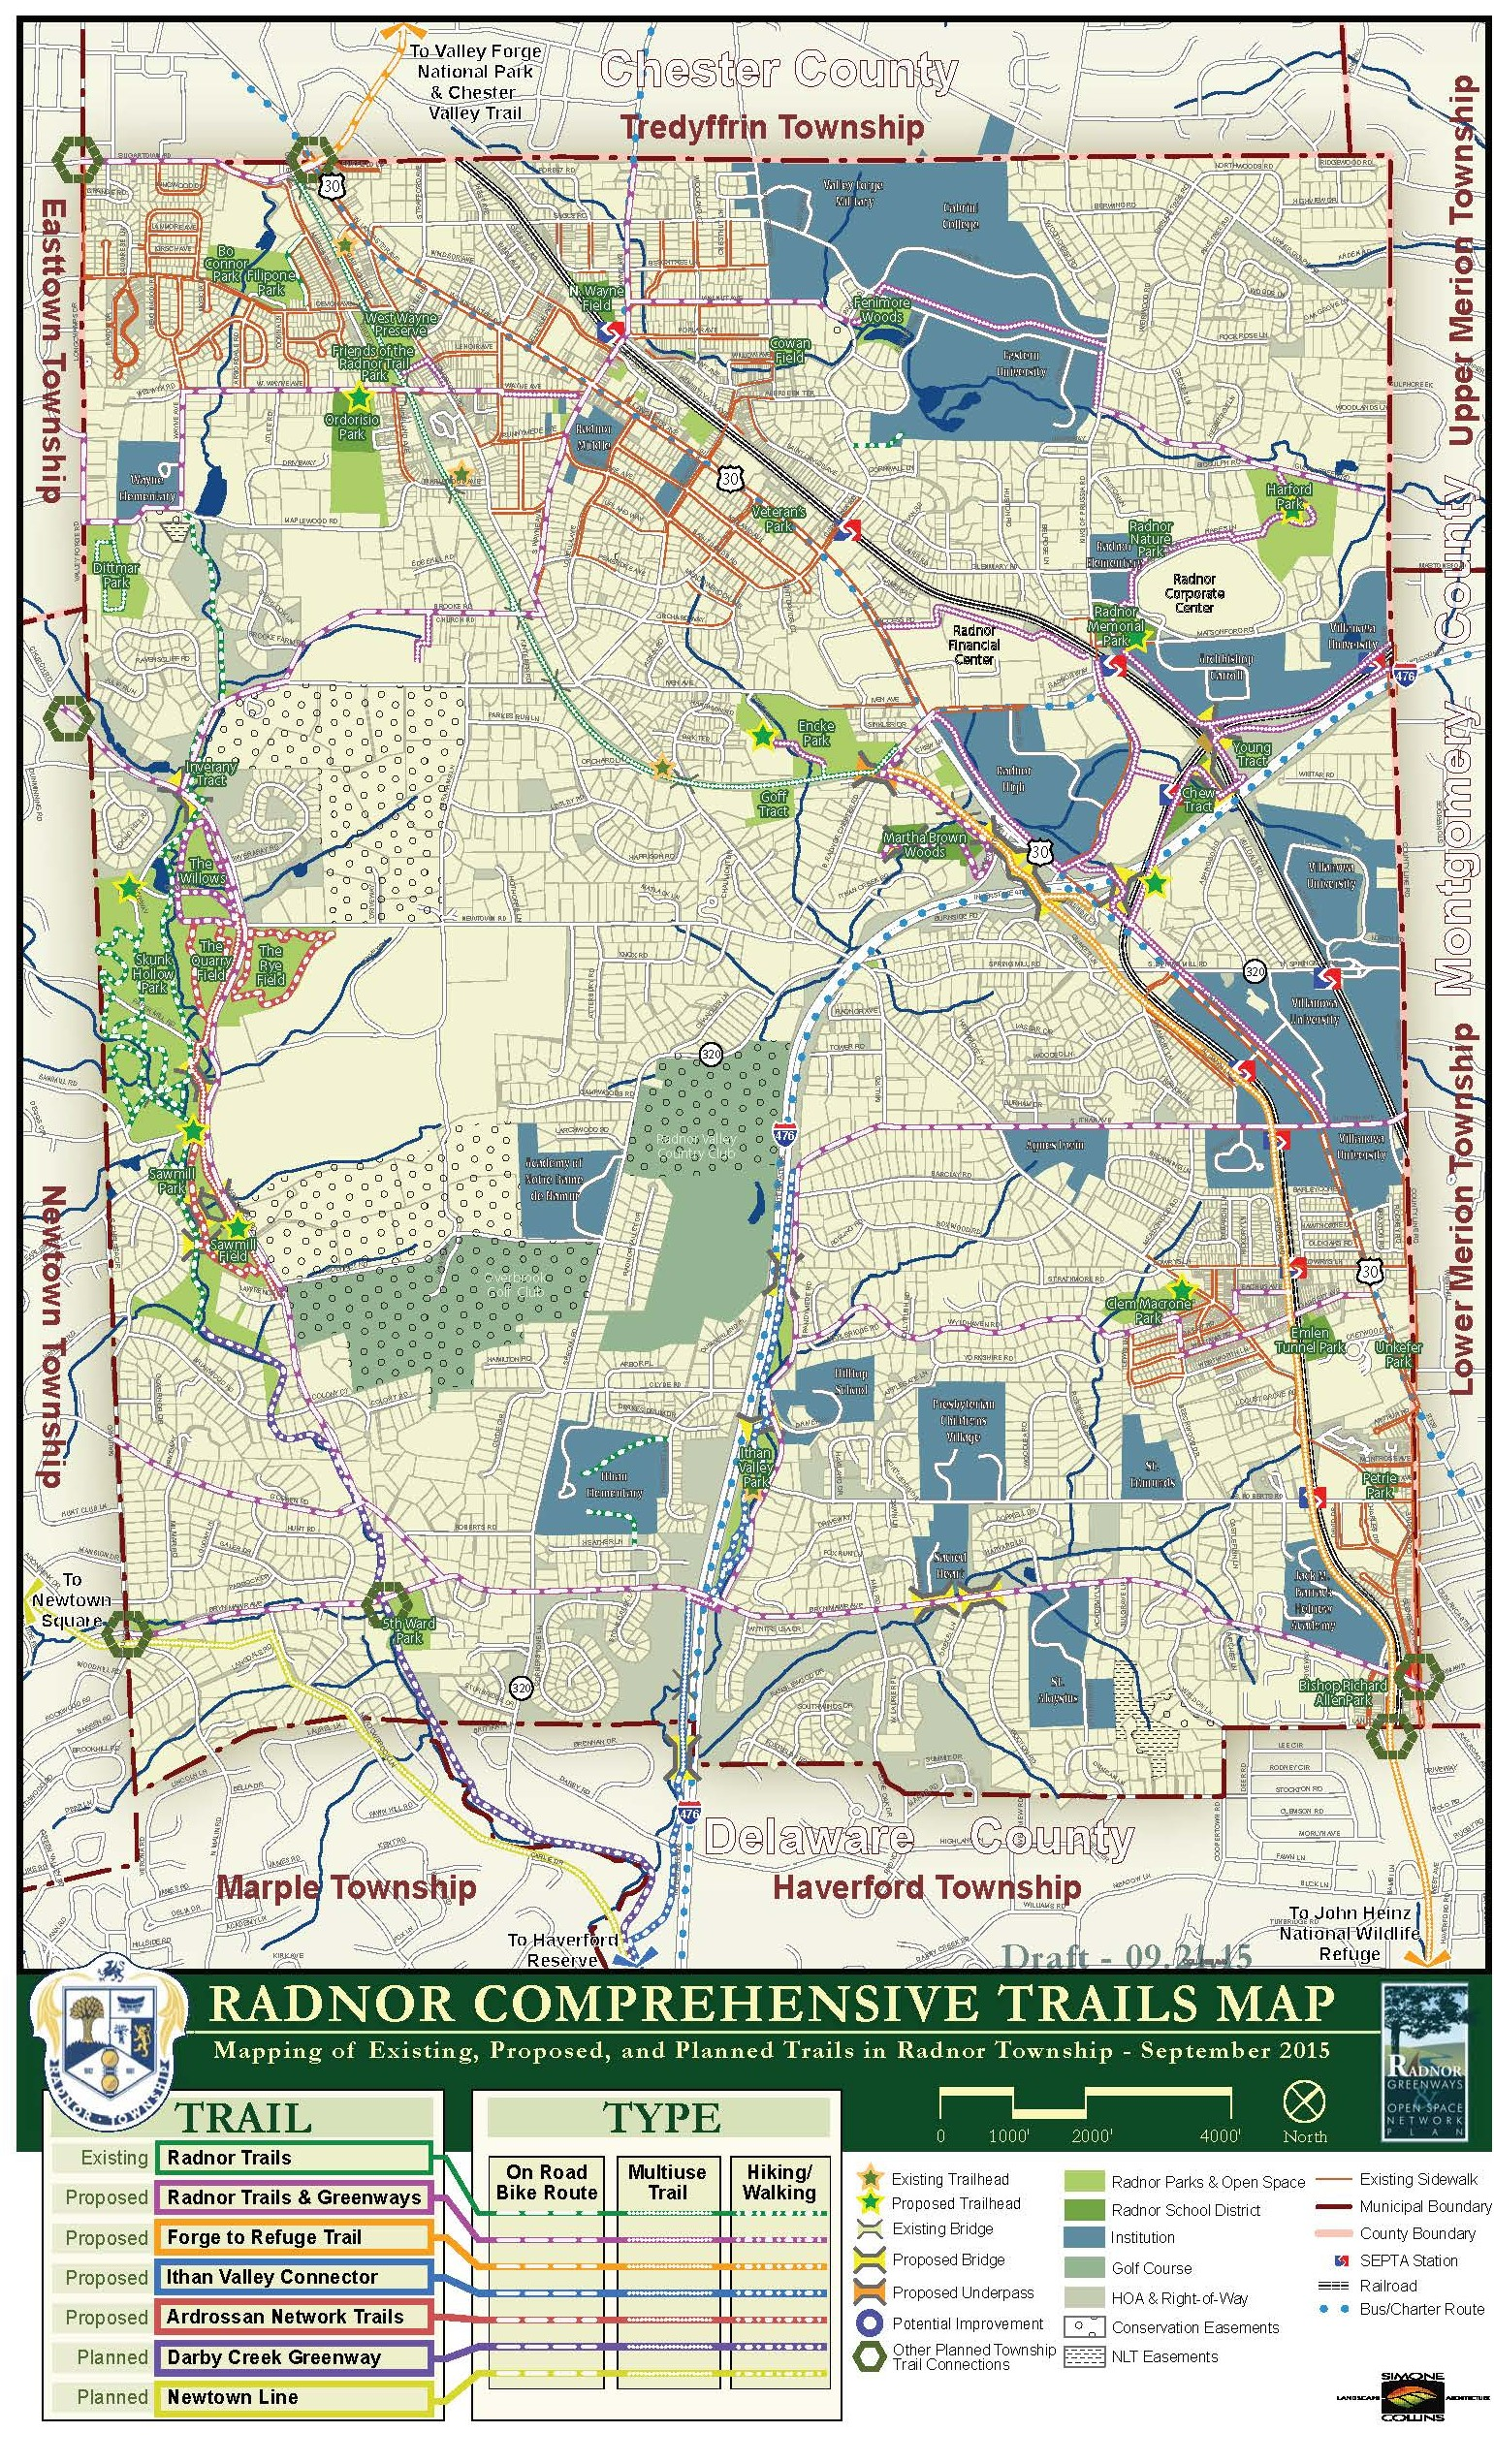 Radnor Comprehensive Trails Map